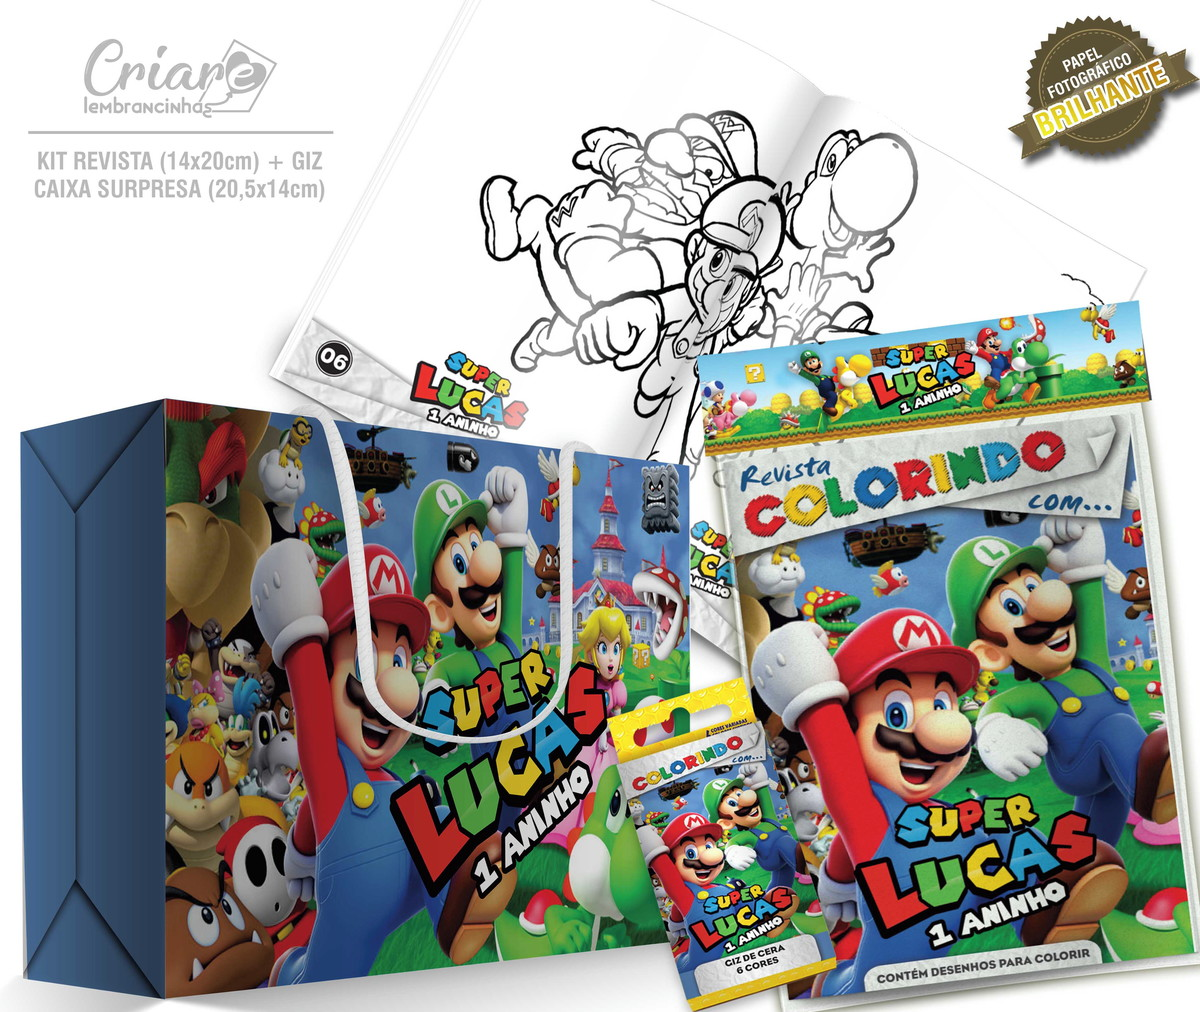 Caixa Surpresa Kit De Colorir Super Mario Bros No Elo7